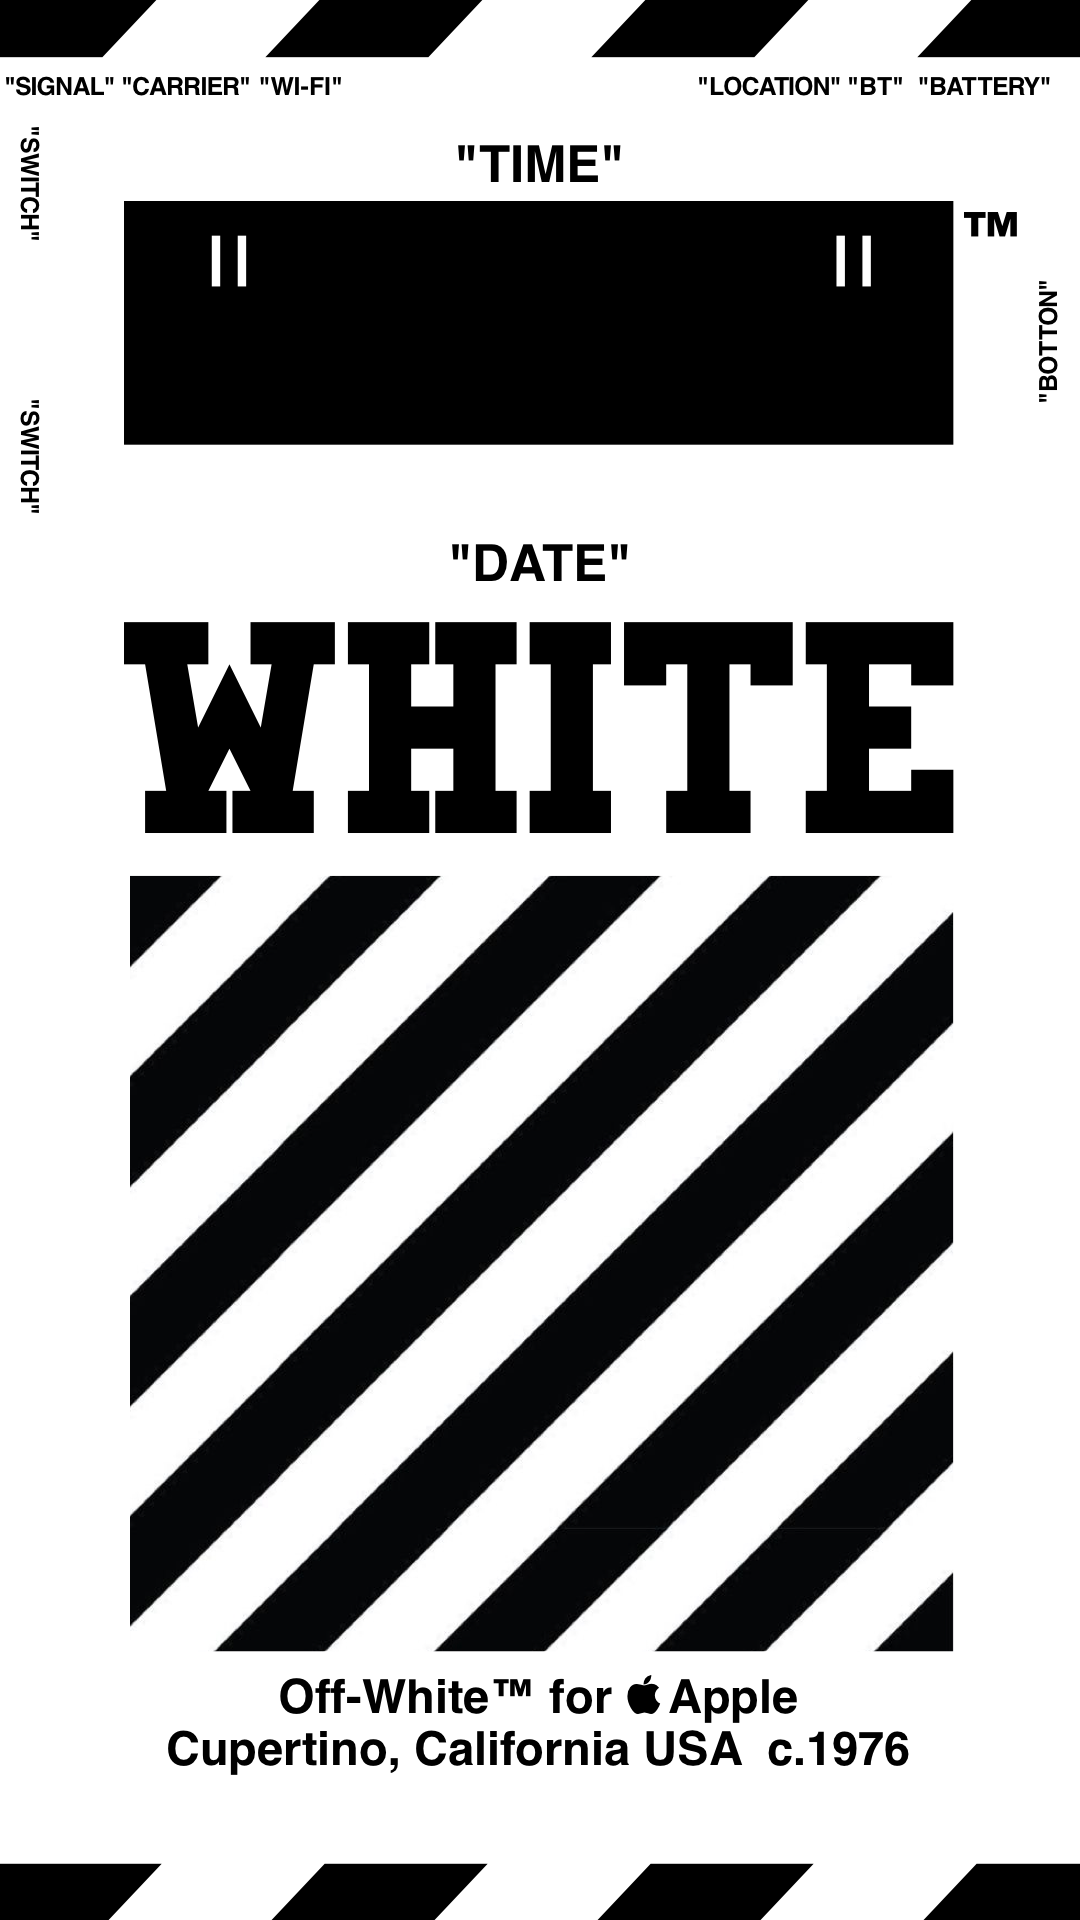 Off White Offwhite Wallpaper Iphone 壁紙 Type C Wh 18 4 3